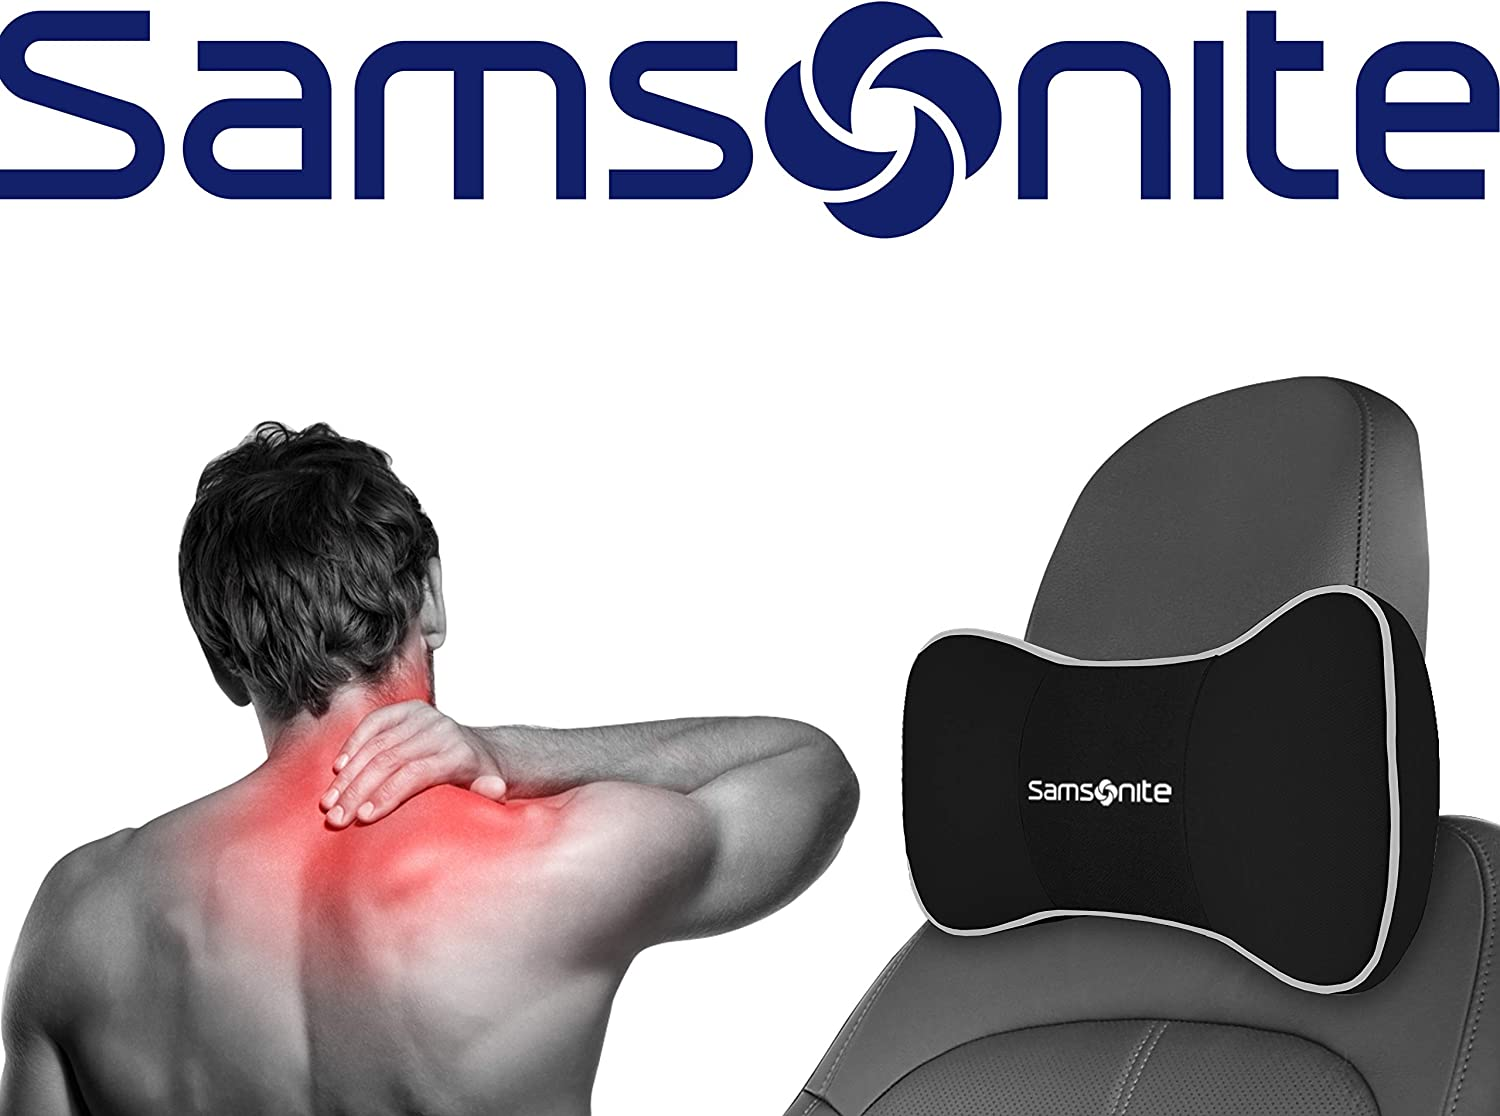 Amazon.com: Samsonite SA5248 - Almohada para cuello: Automotive